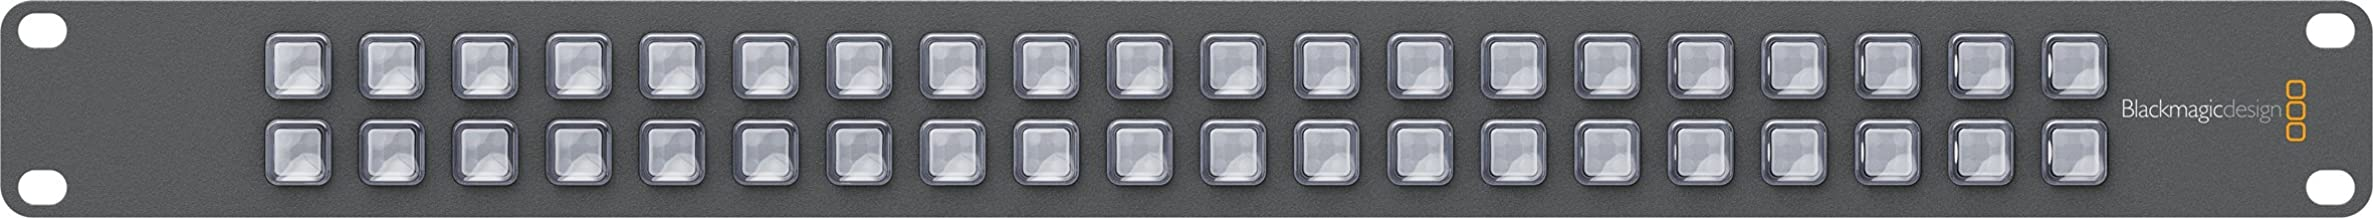 Blackmagic Design Smart Control, 40 Programmable Buttons and RJ45 Ethernet an ip network